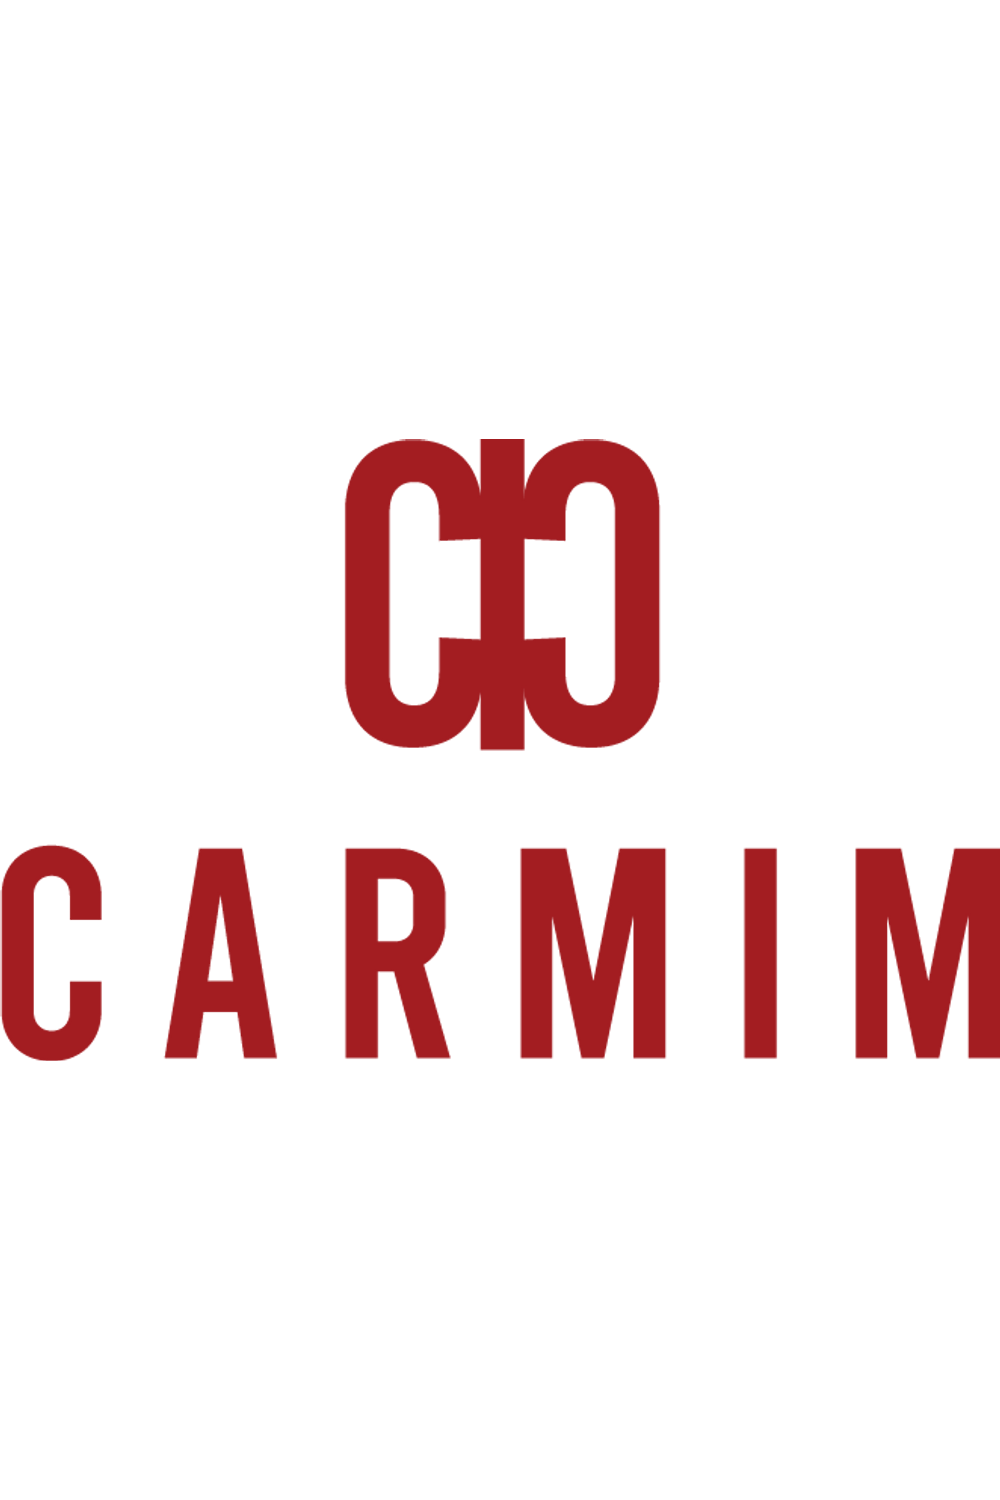 CARMIM-Logo-Red-2021